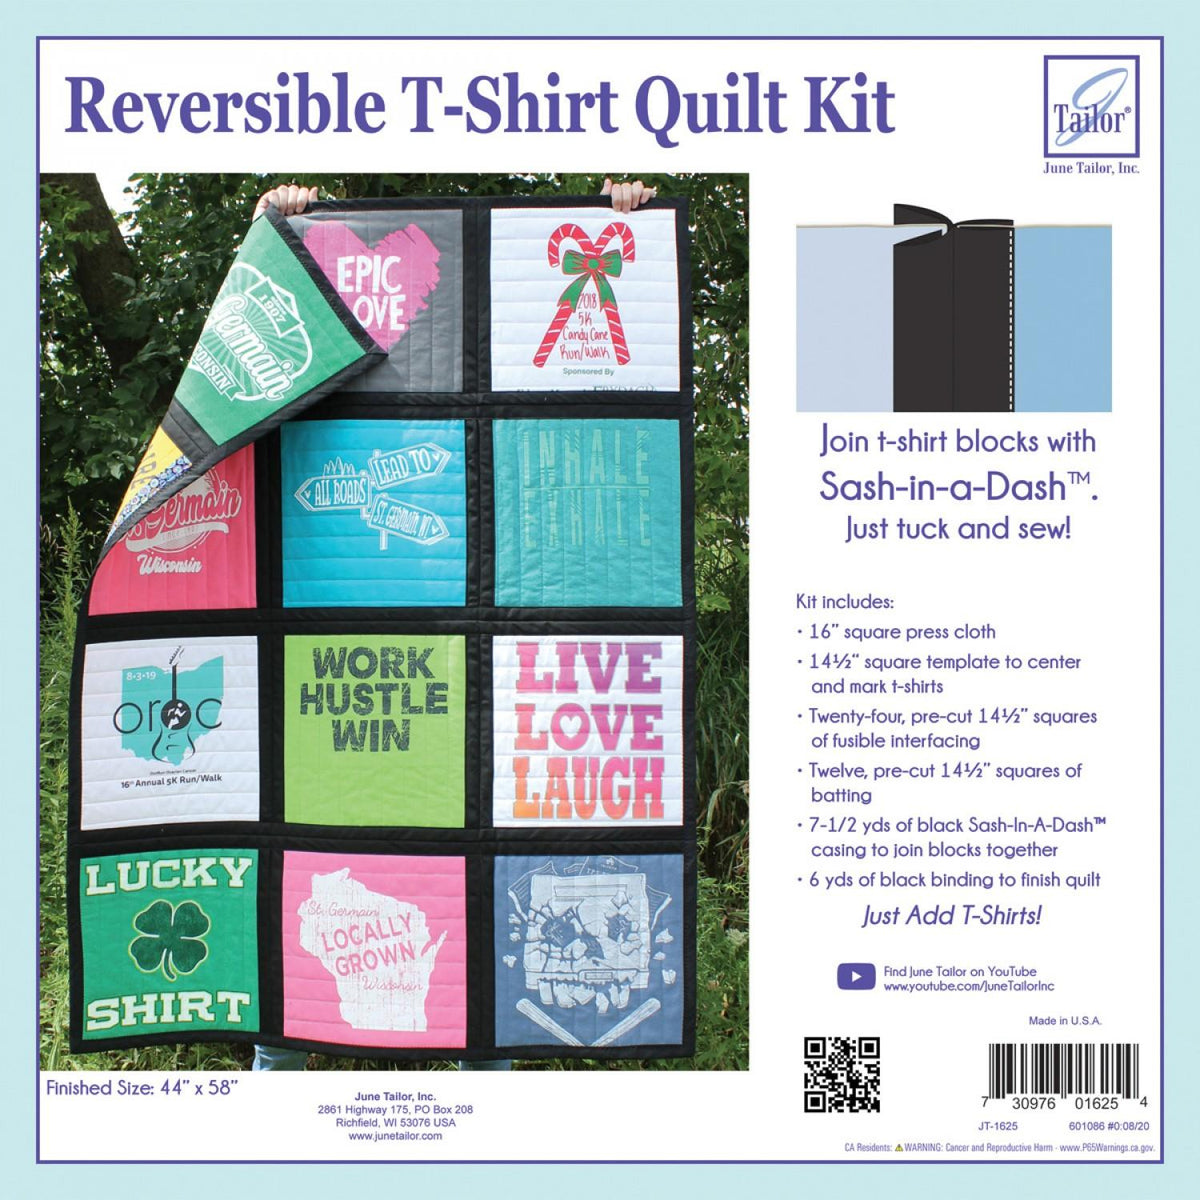 Reversible T-Shirt Quilt Kit Sash-In-A-Dash - BLACK